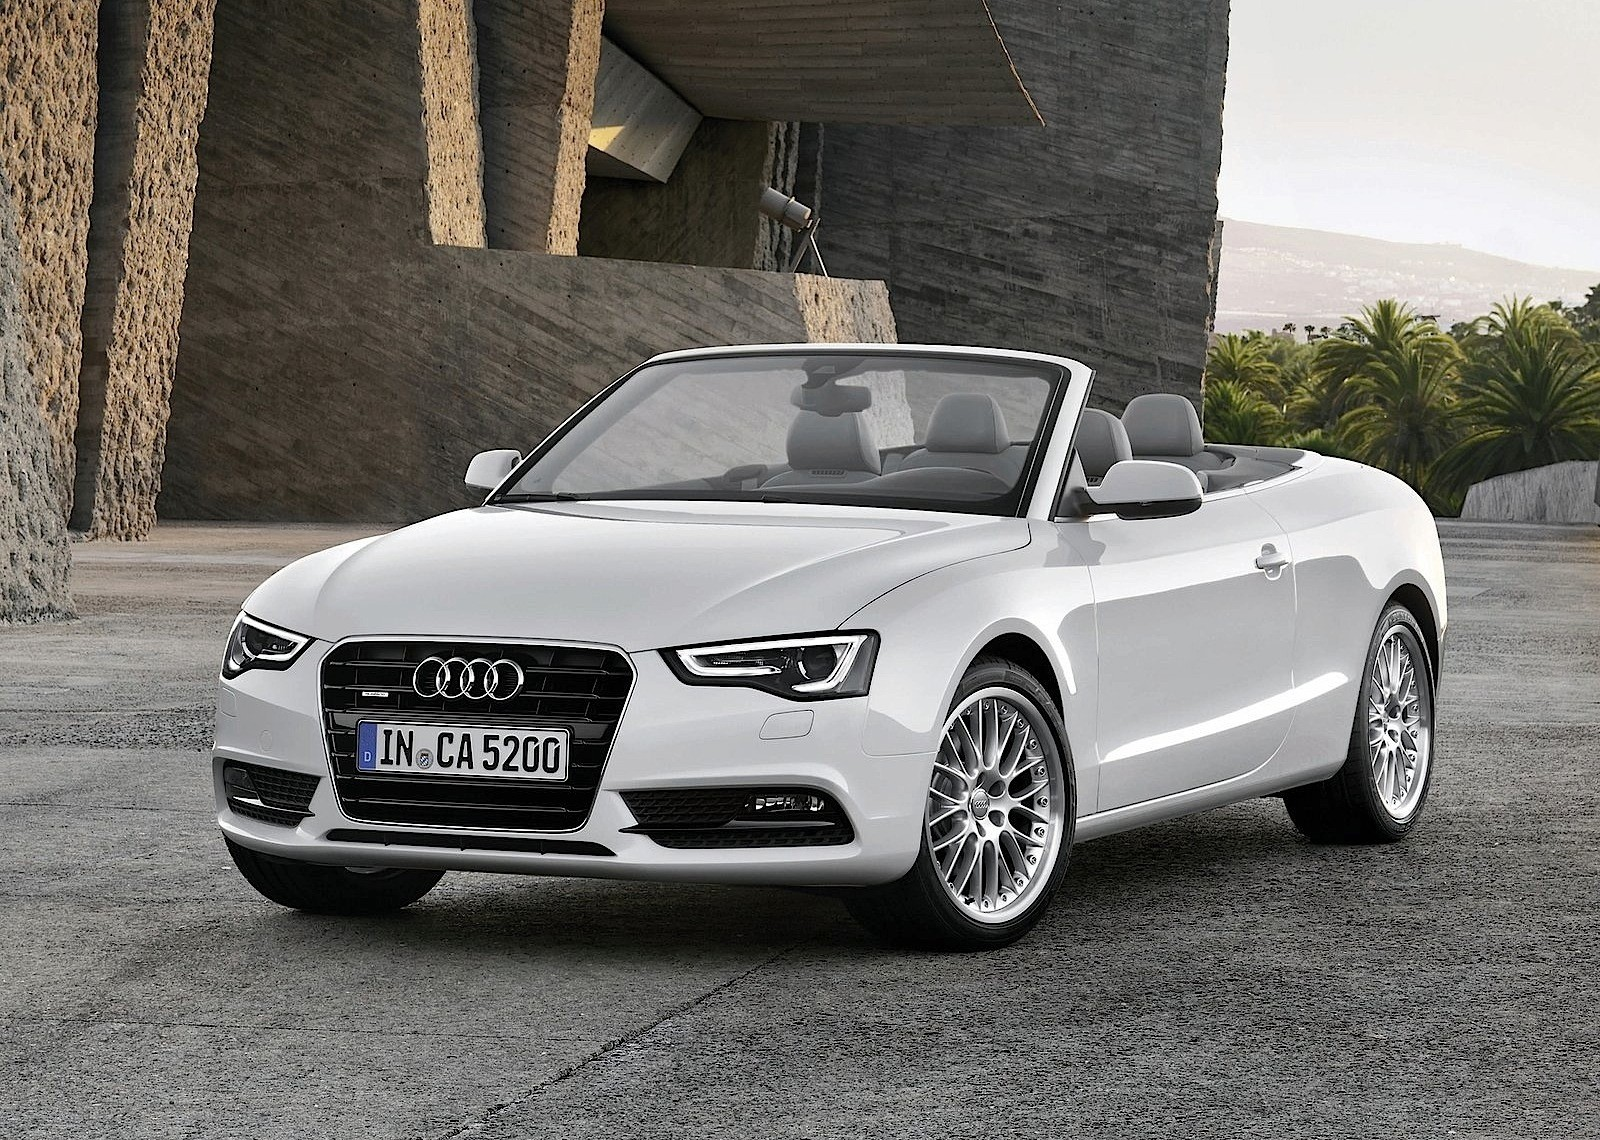 Audi A5 Cabriolet Specs Photos 2012 2013 2014 2015 2016 2017 2018 2019 2020 2021 Autoevolution